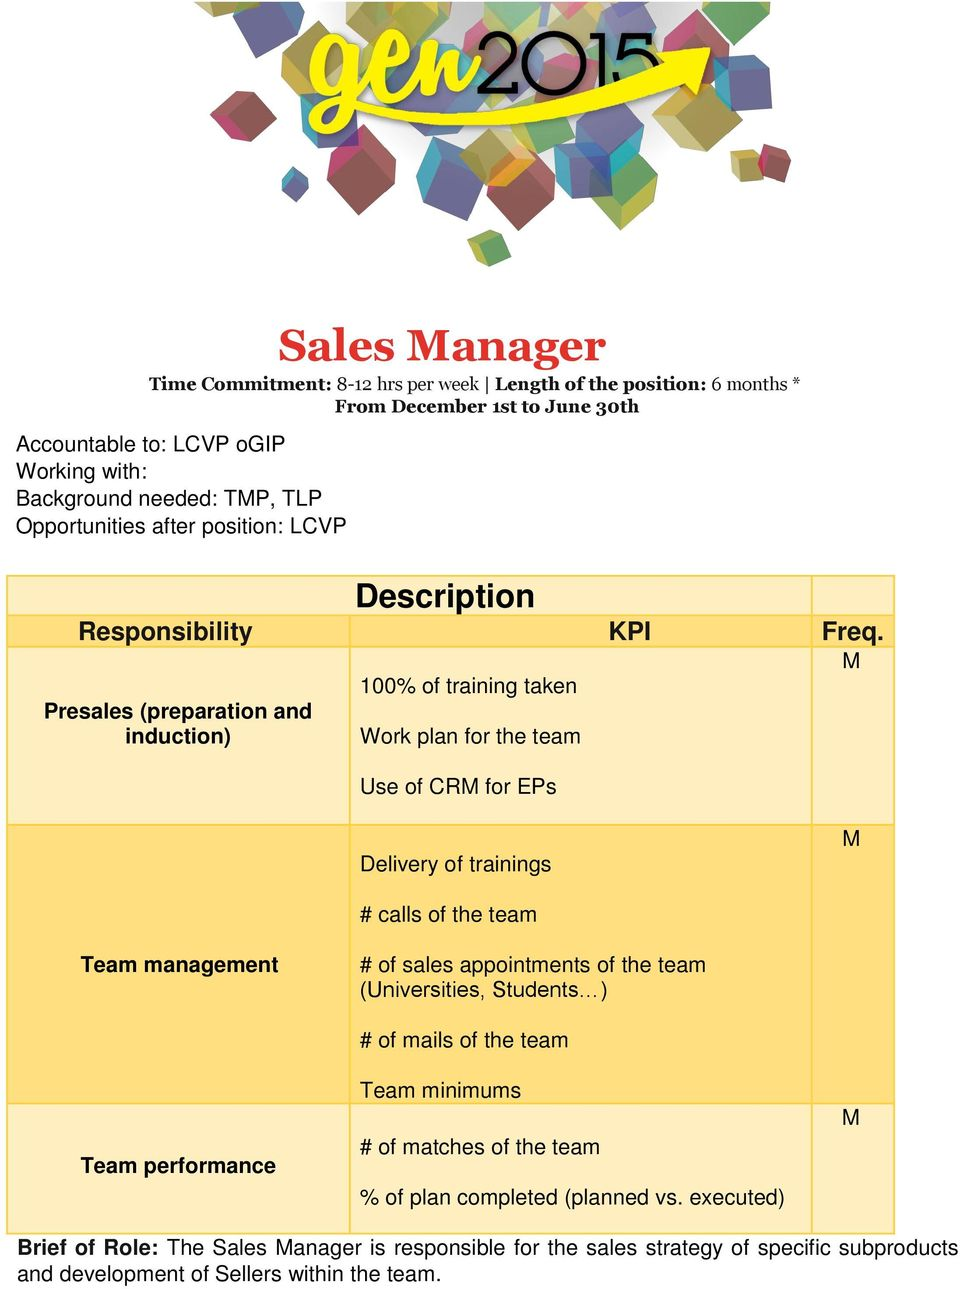 Presales (preparation and induction) 100% of training taken Work plan for the team Use of CR for EPs Delivery of trainings # calls of the team Team management # of sales appointments